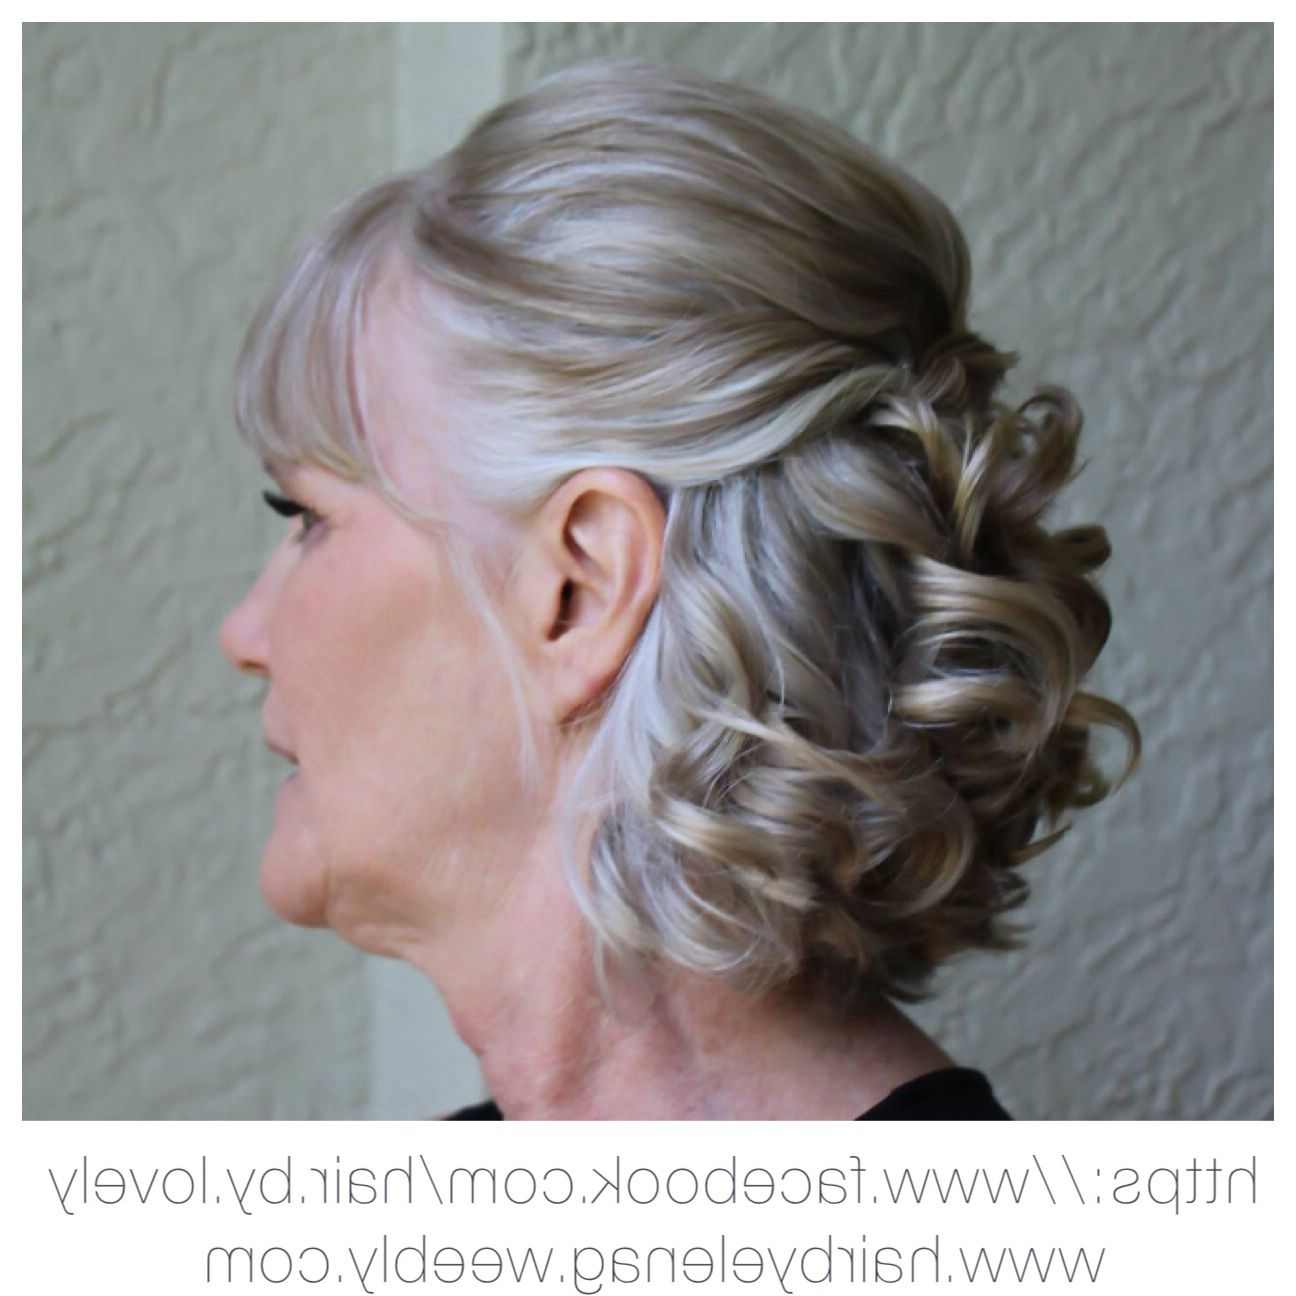 Well Known Vintage Mother Of The Bride Hairstyles Regarding Pingonul Shishko On After50agehair In (View 12 of 20)